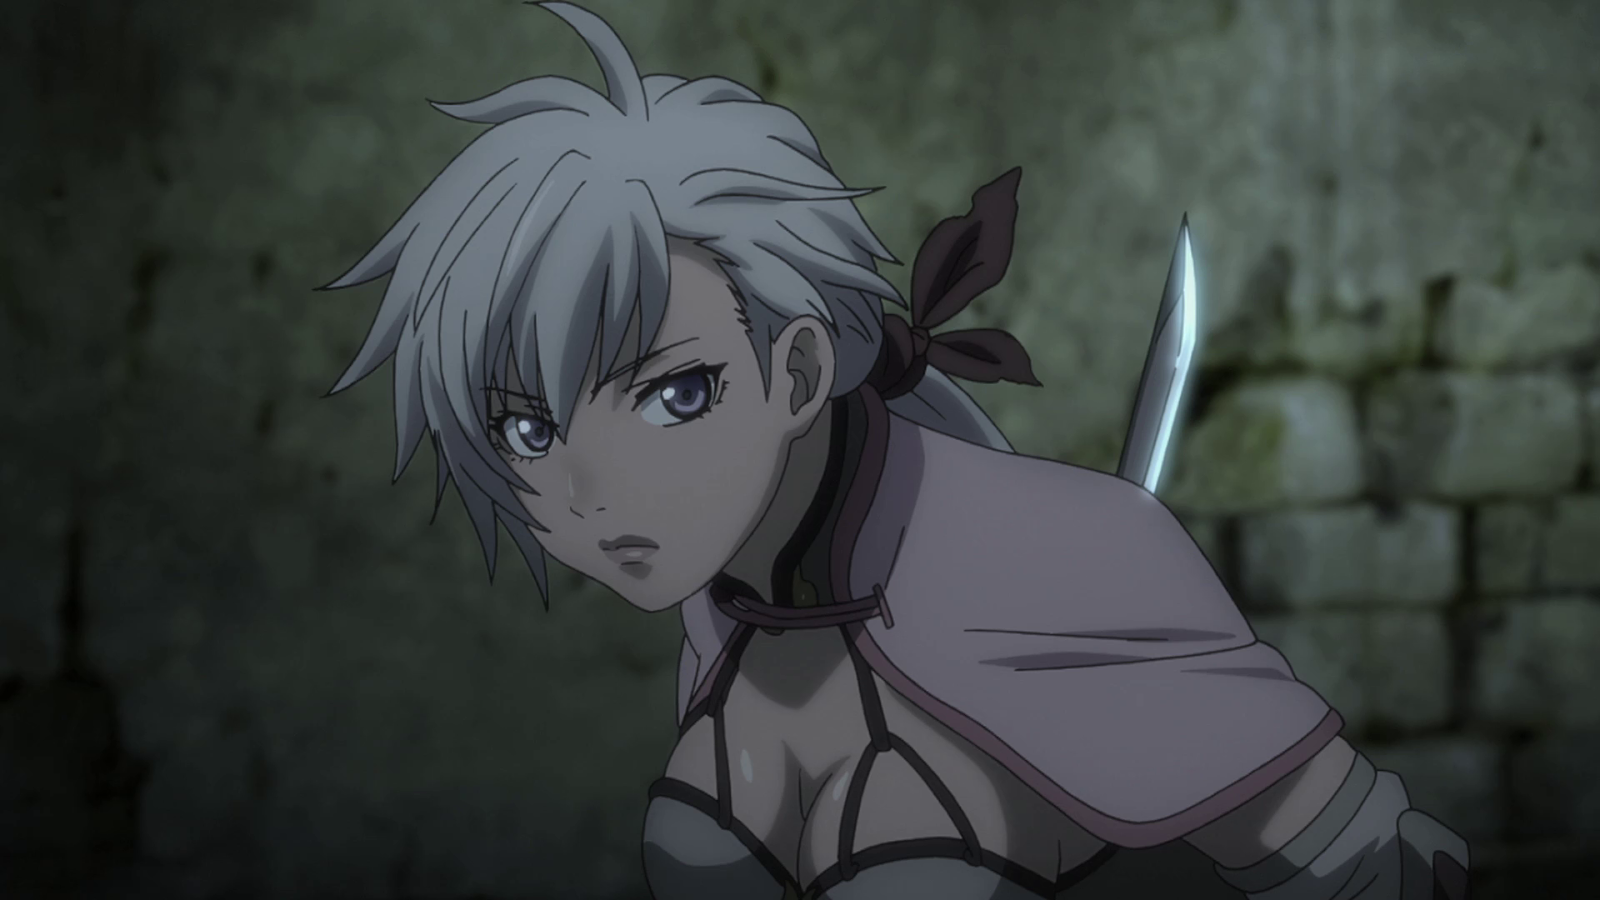 Blade and Soul Episode 2 Subtitle Indonesia